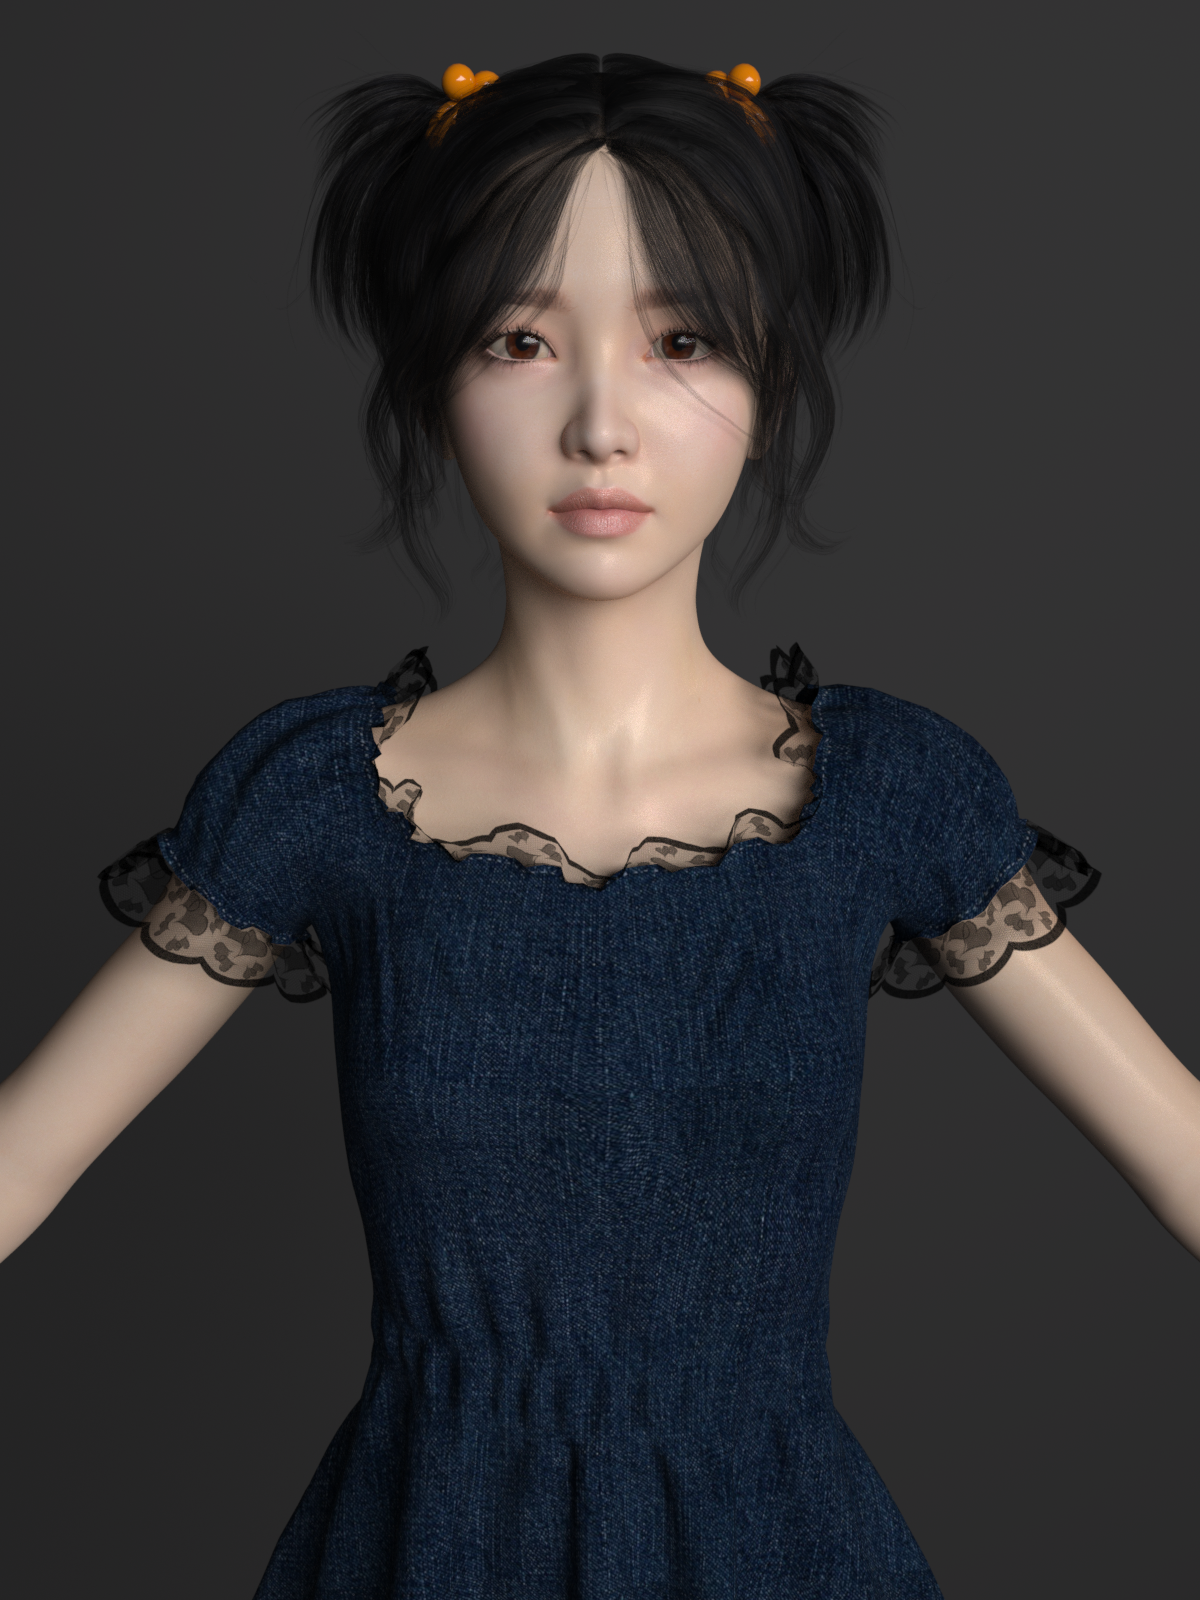 Asian beautiful girl by hatred123 | 3DOcean